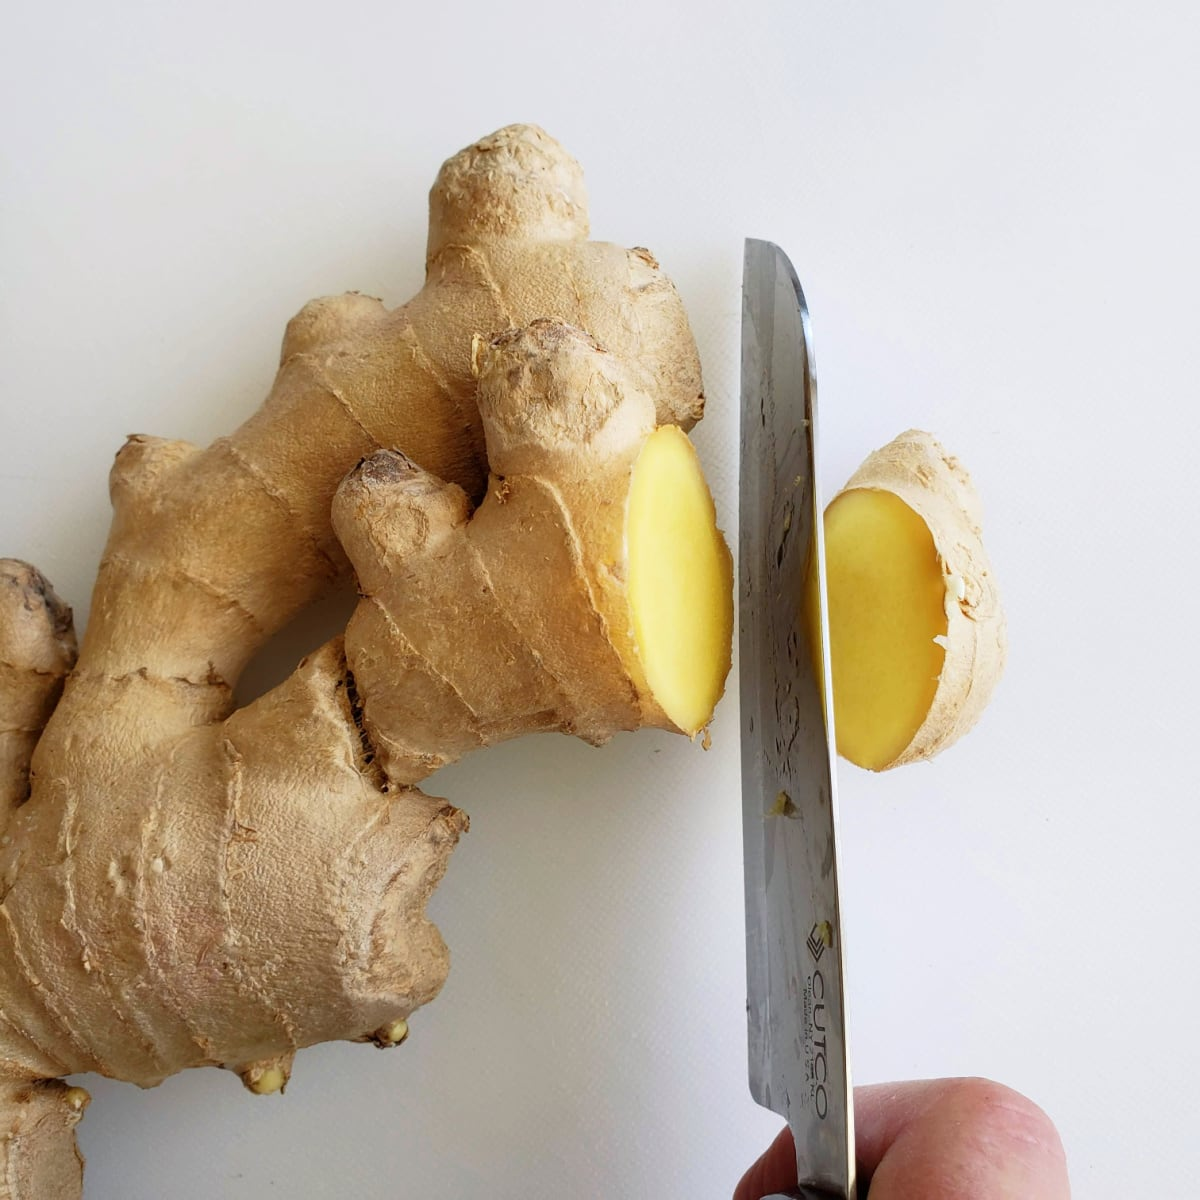 Cut ginger into coins on a white cutting board